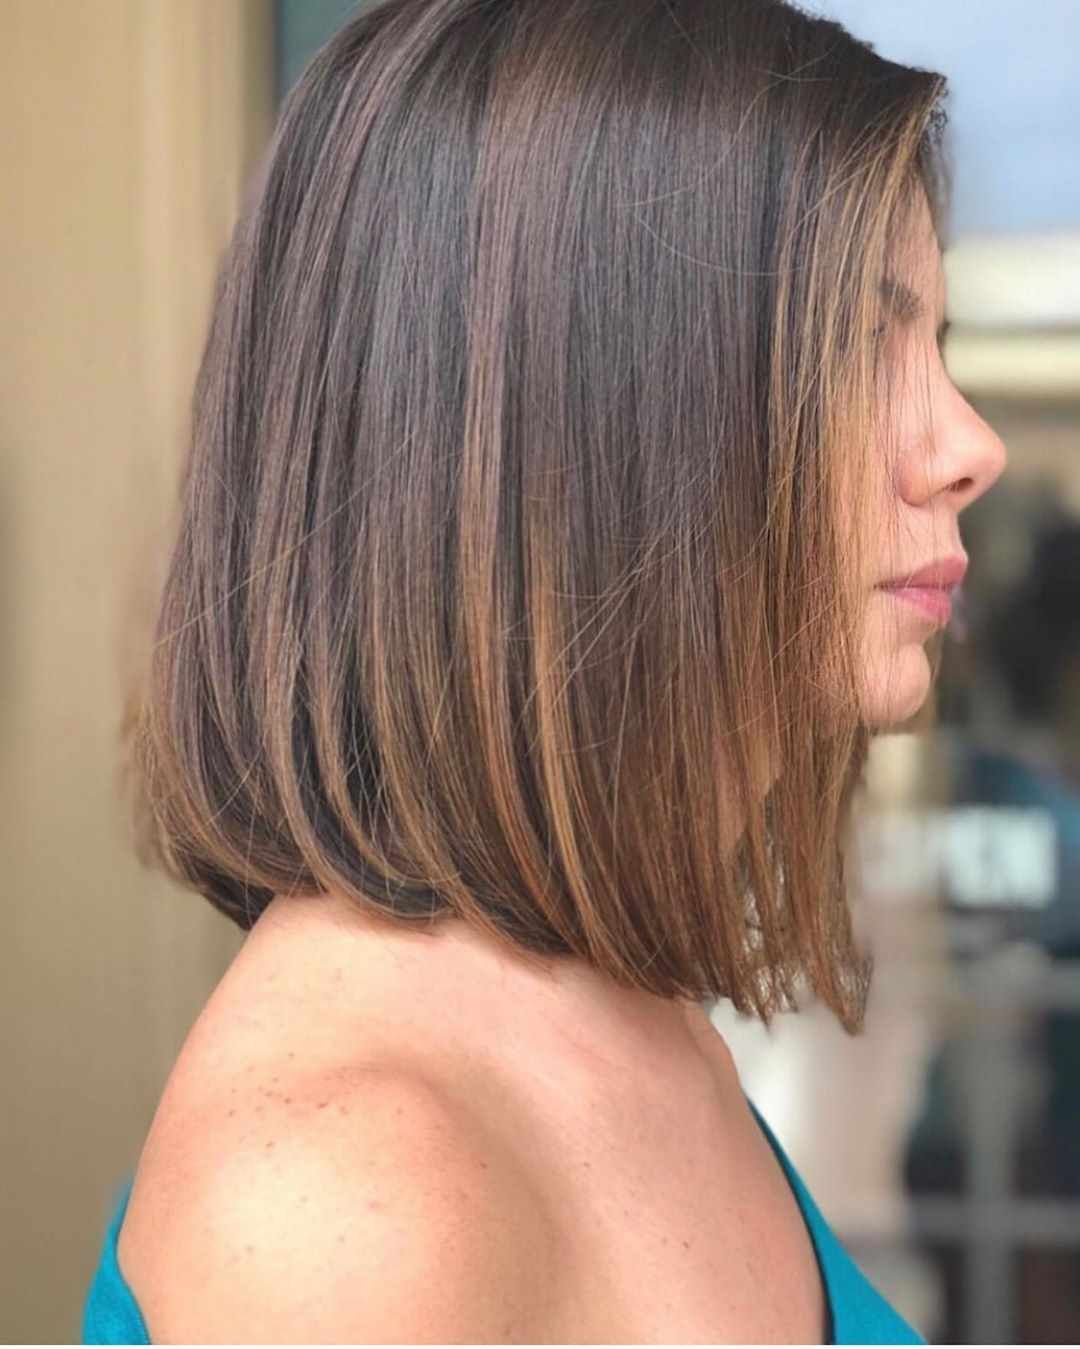 Awesome Straight Hairstyles In 2020 Straight Hairstyles Hair Styles Hair